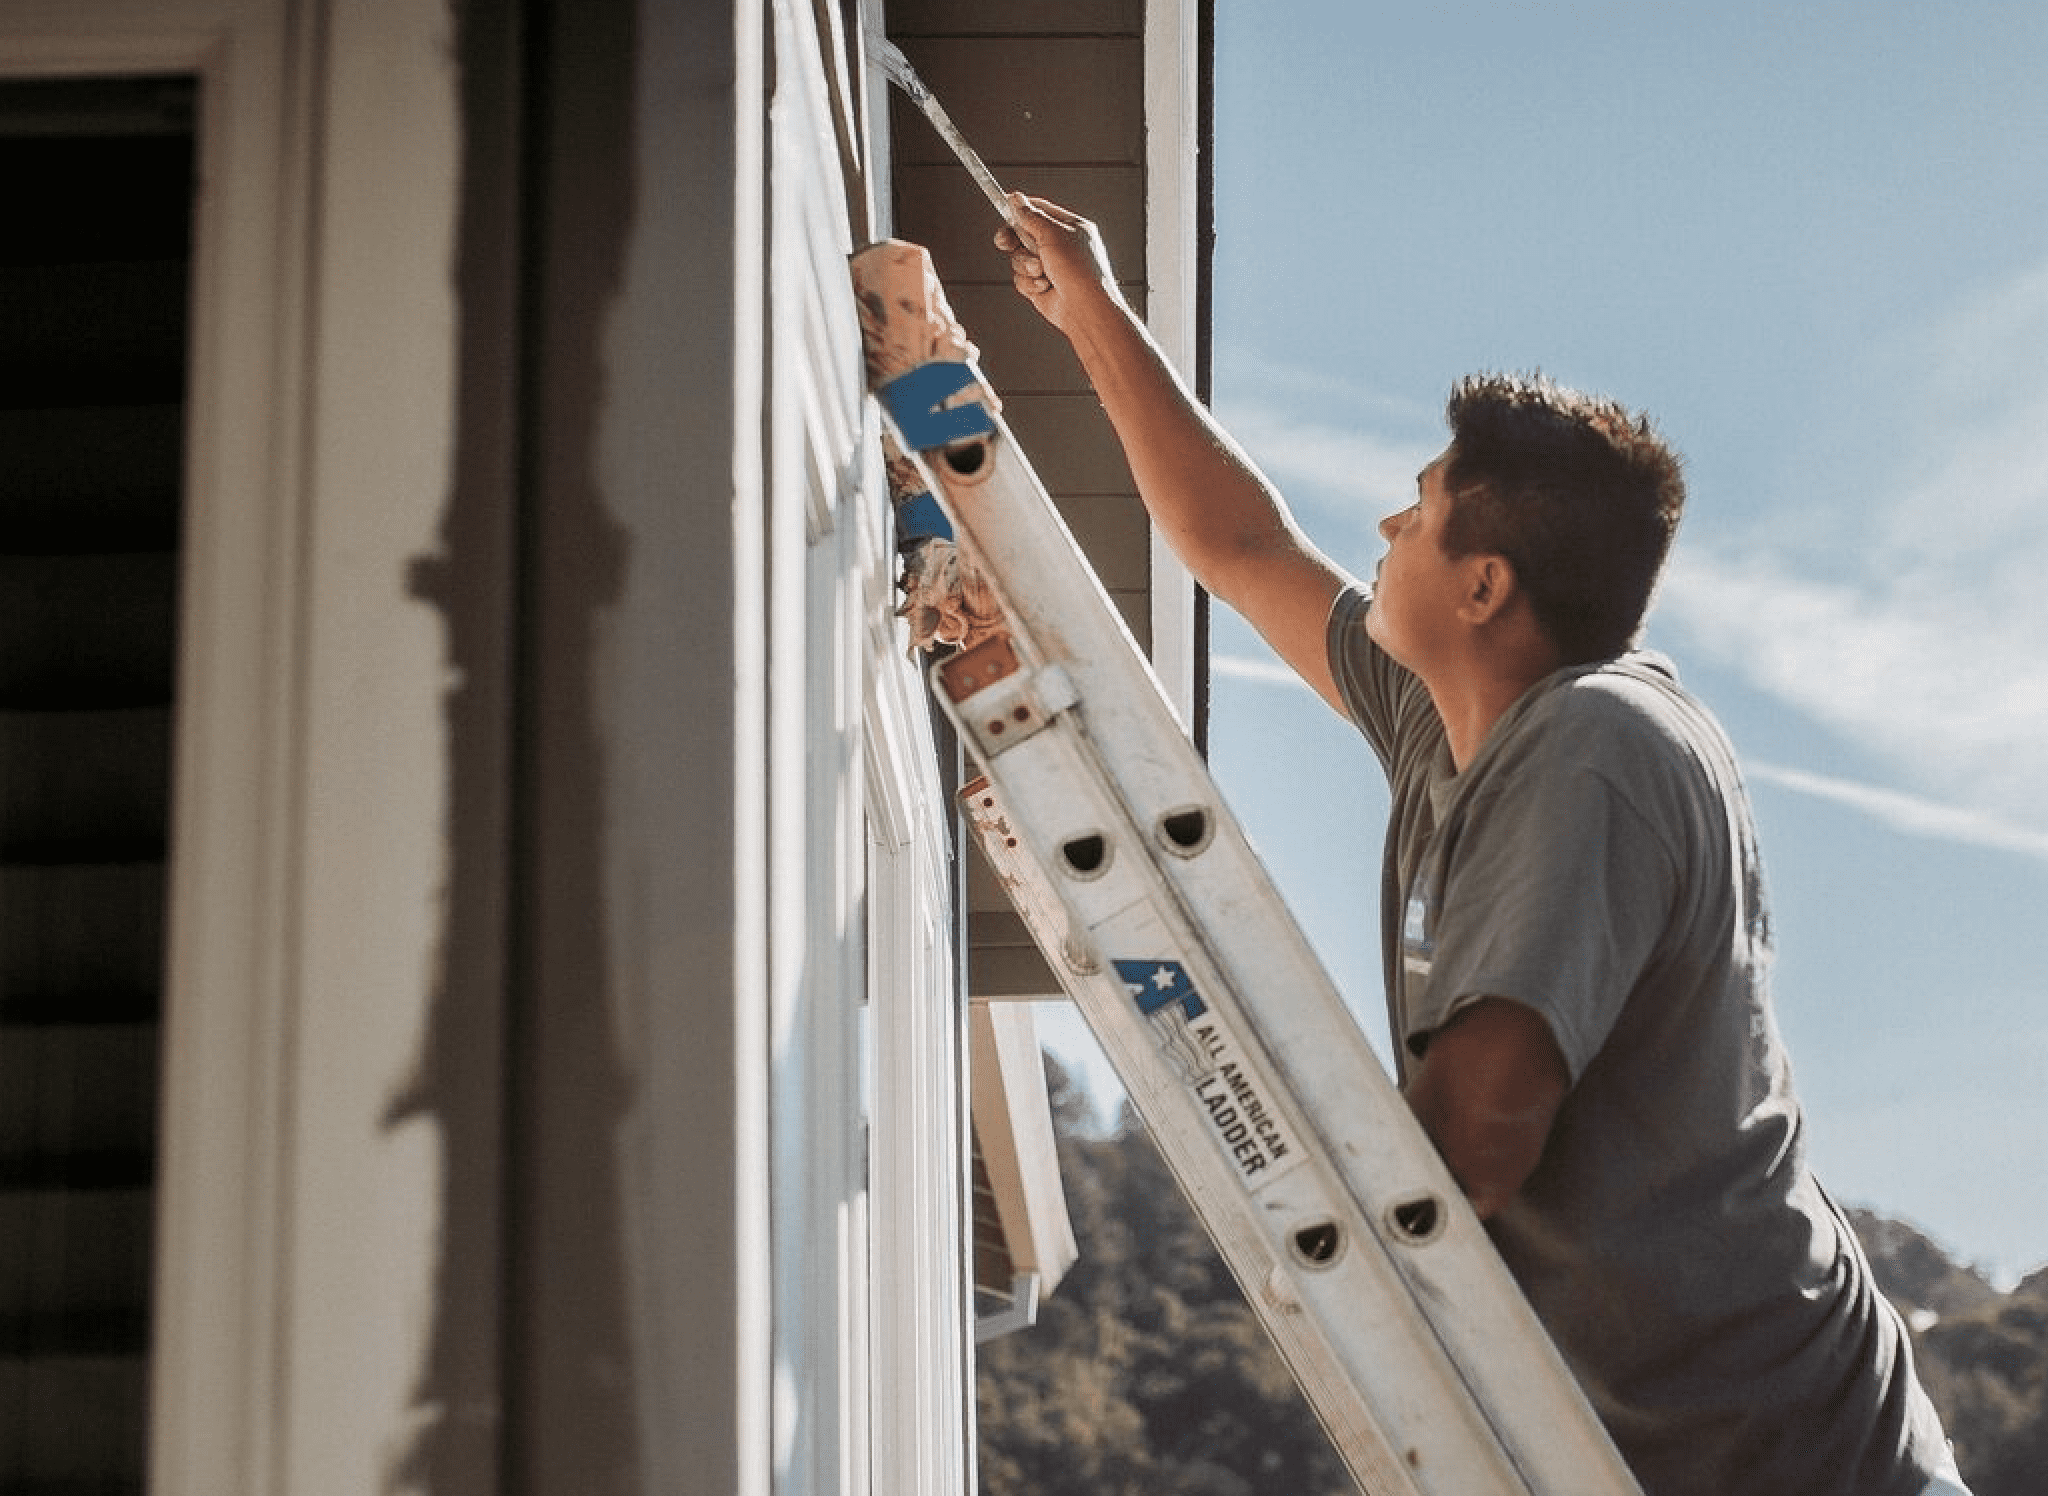 painter on ladder painting house exterior